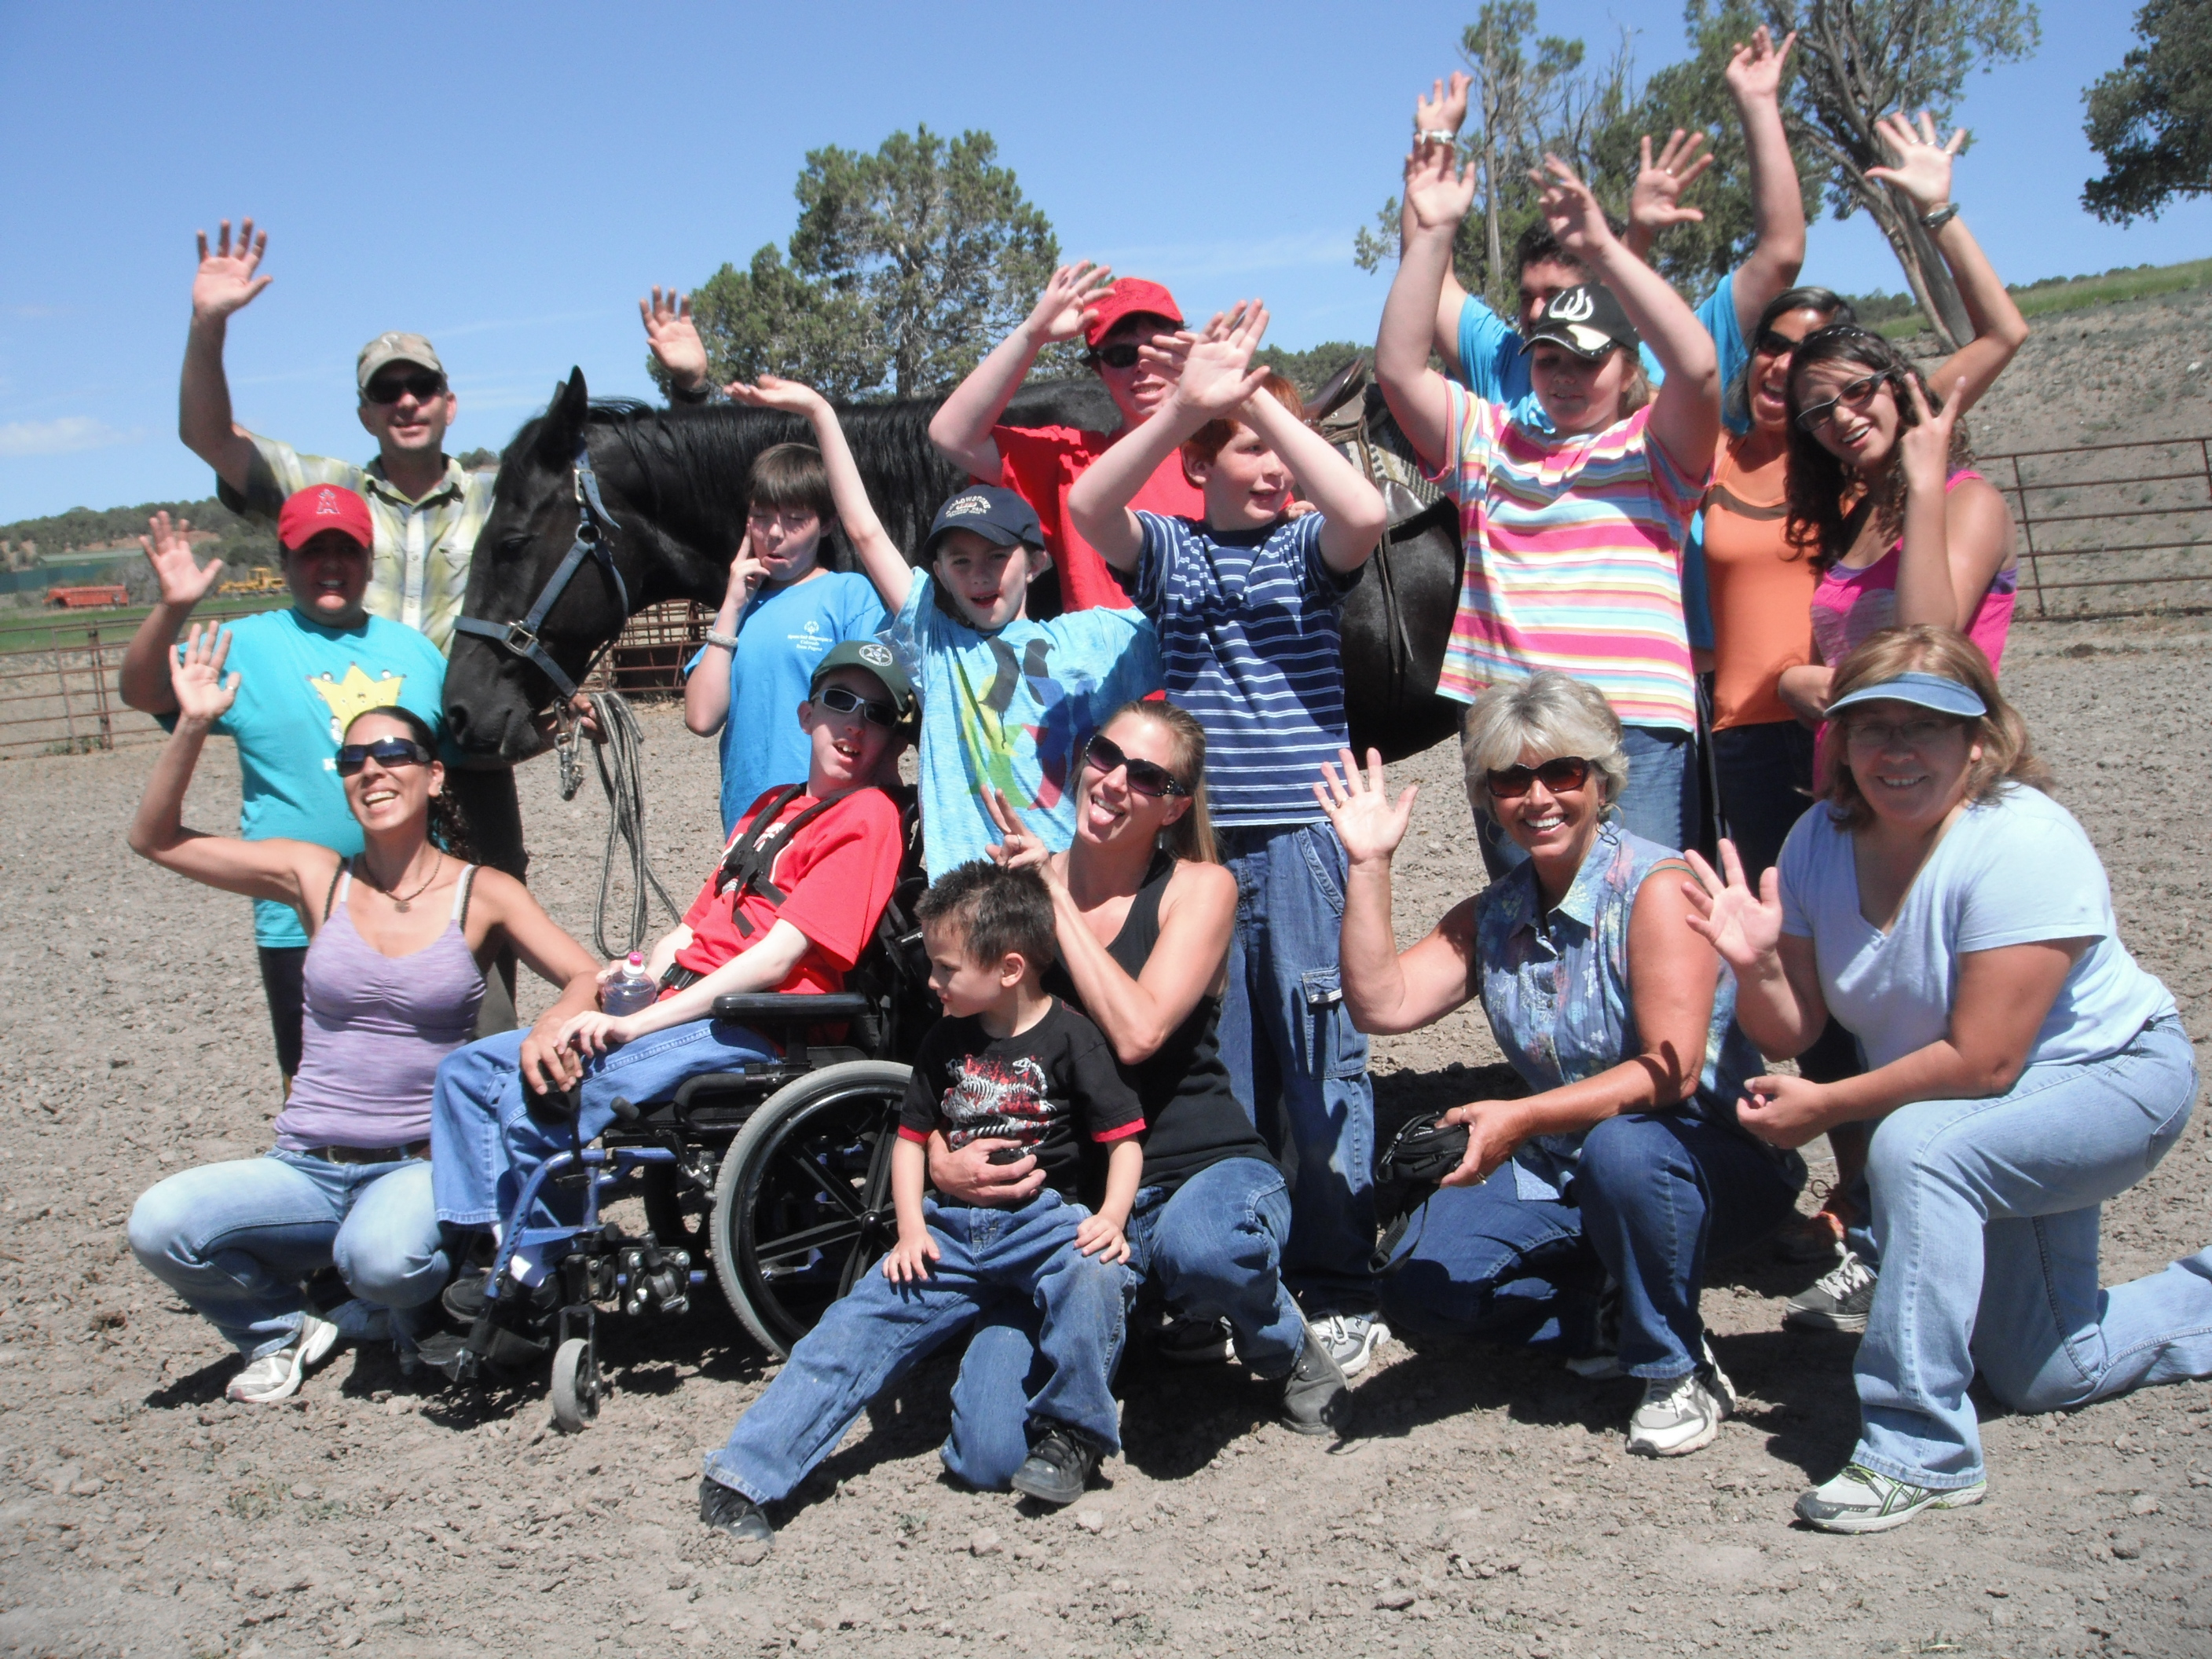 Special needs group excited after day of riding horses.